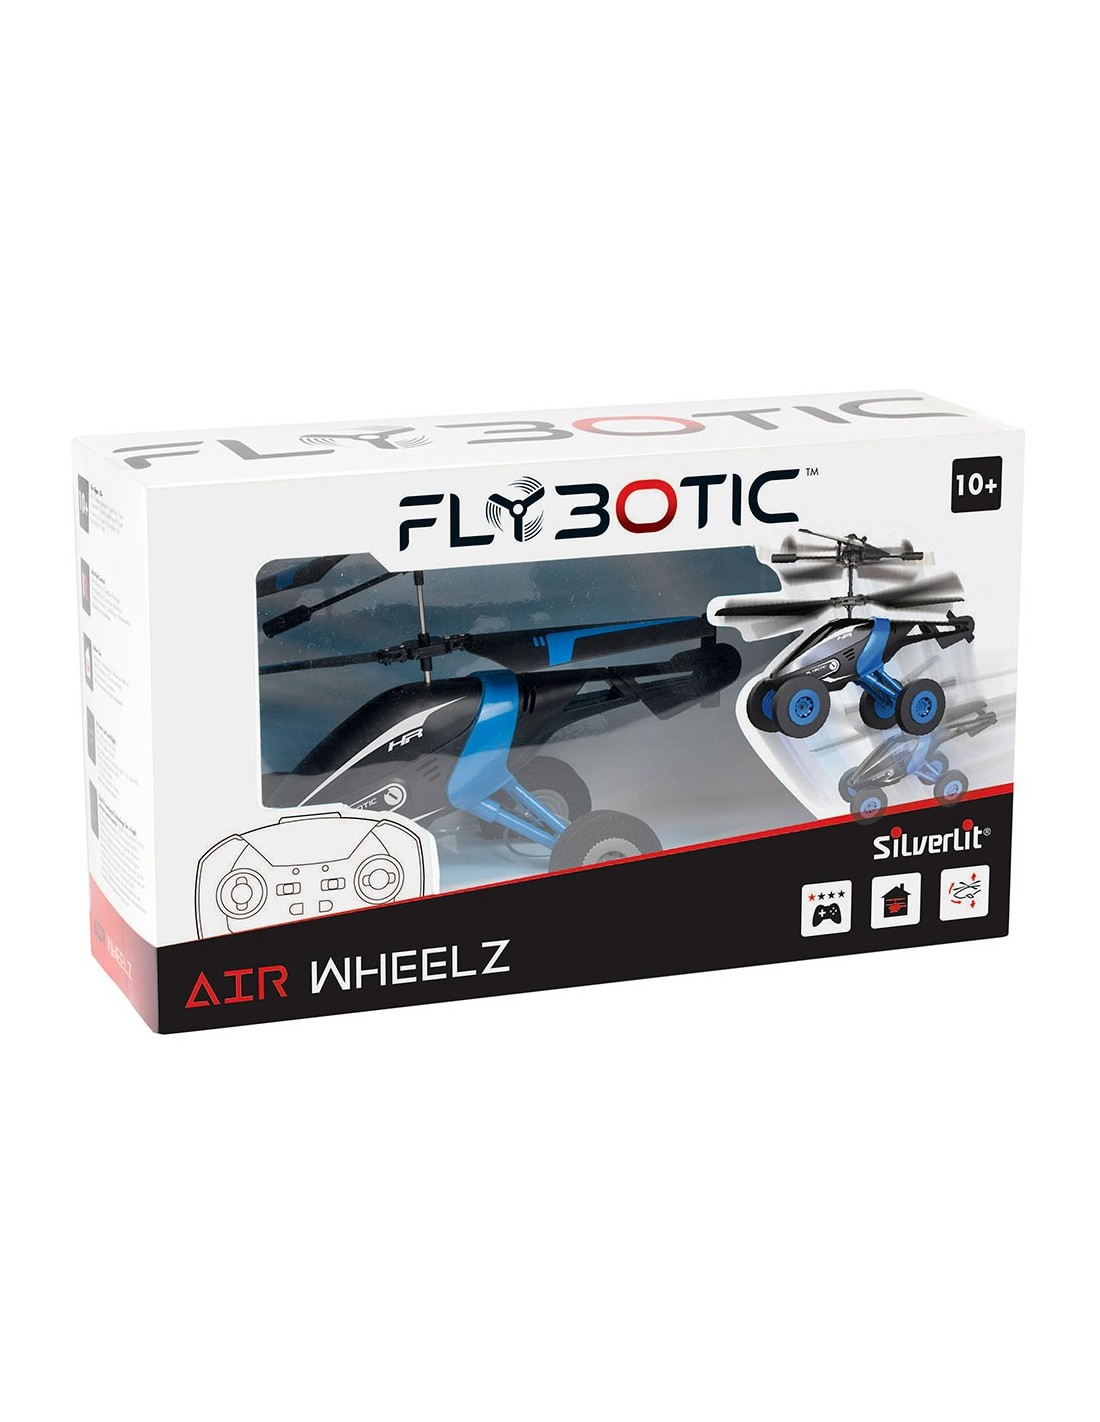 Elicopter cu telecomanda Air Wheelz - 2 culori diferite | Silverlit